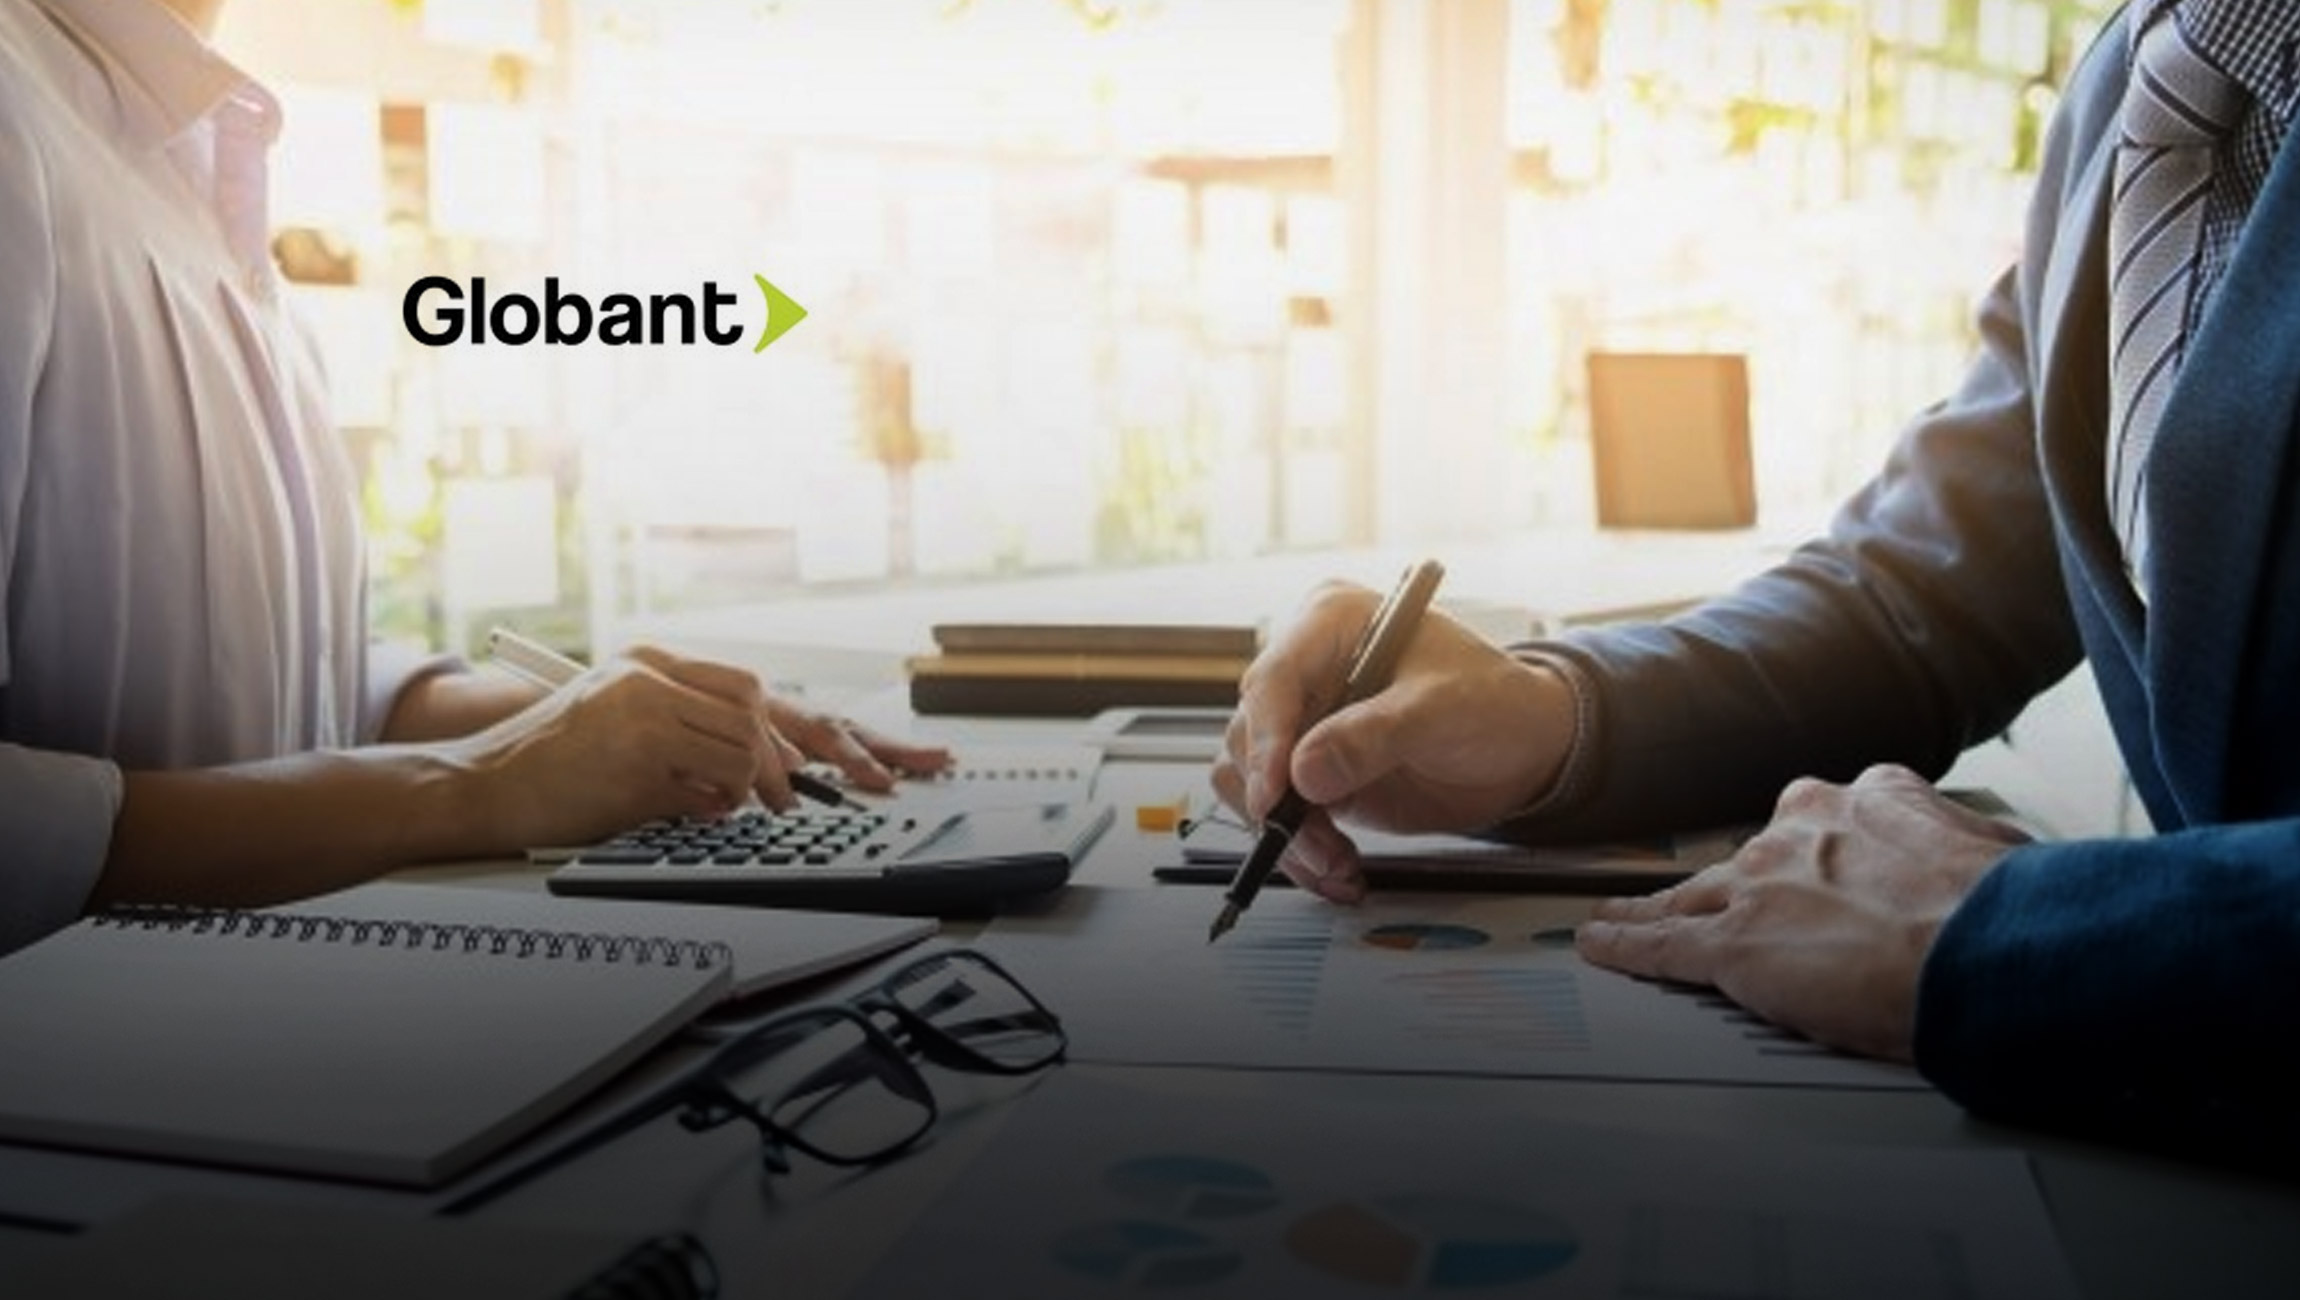 """New Globant Report Explores How to Reinvent Industries for Today's Unanticipated """"New Normal"""""""